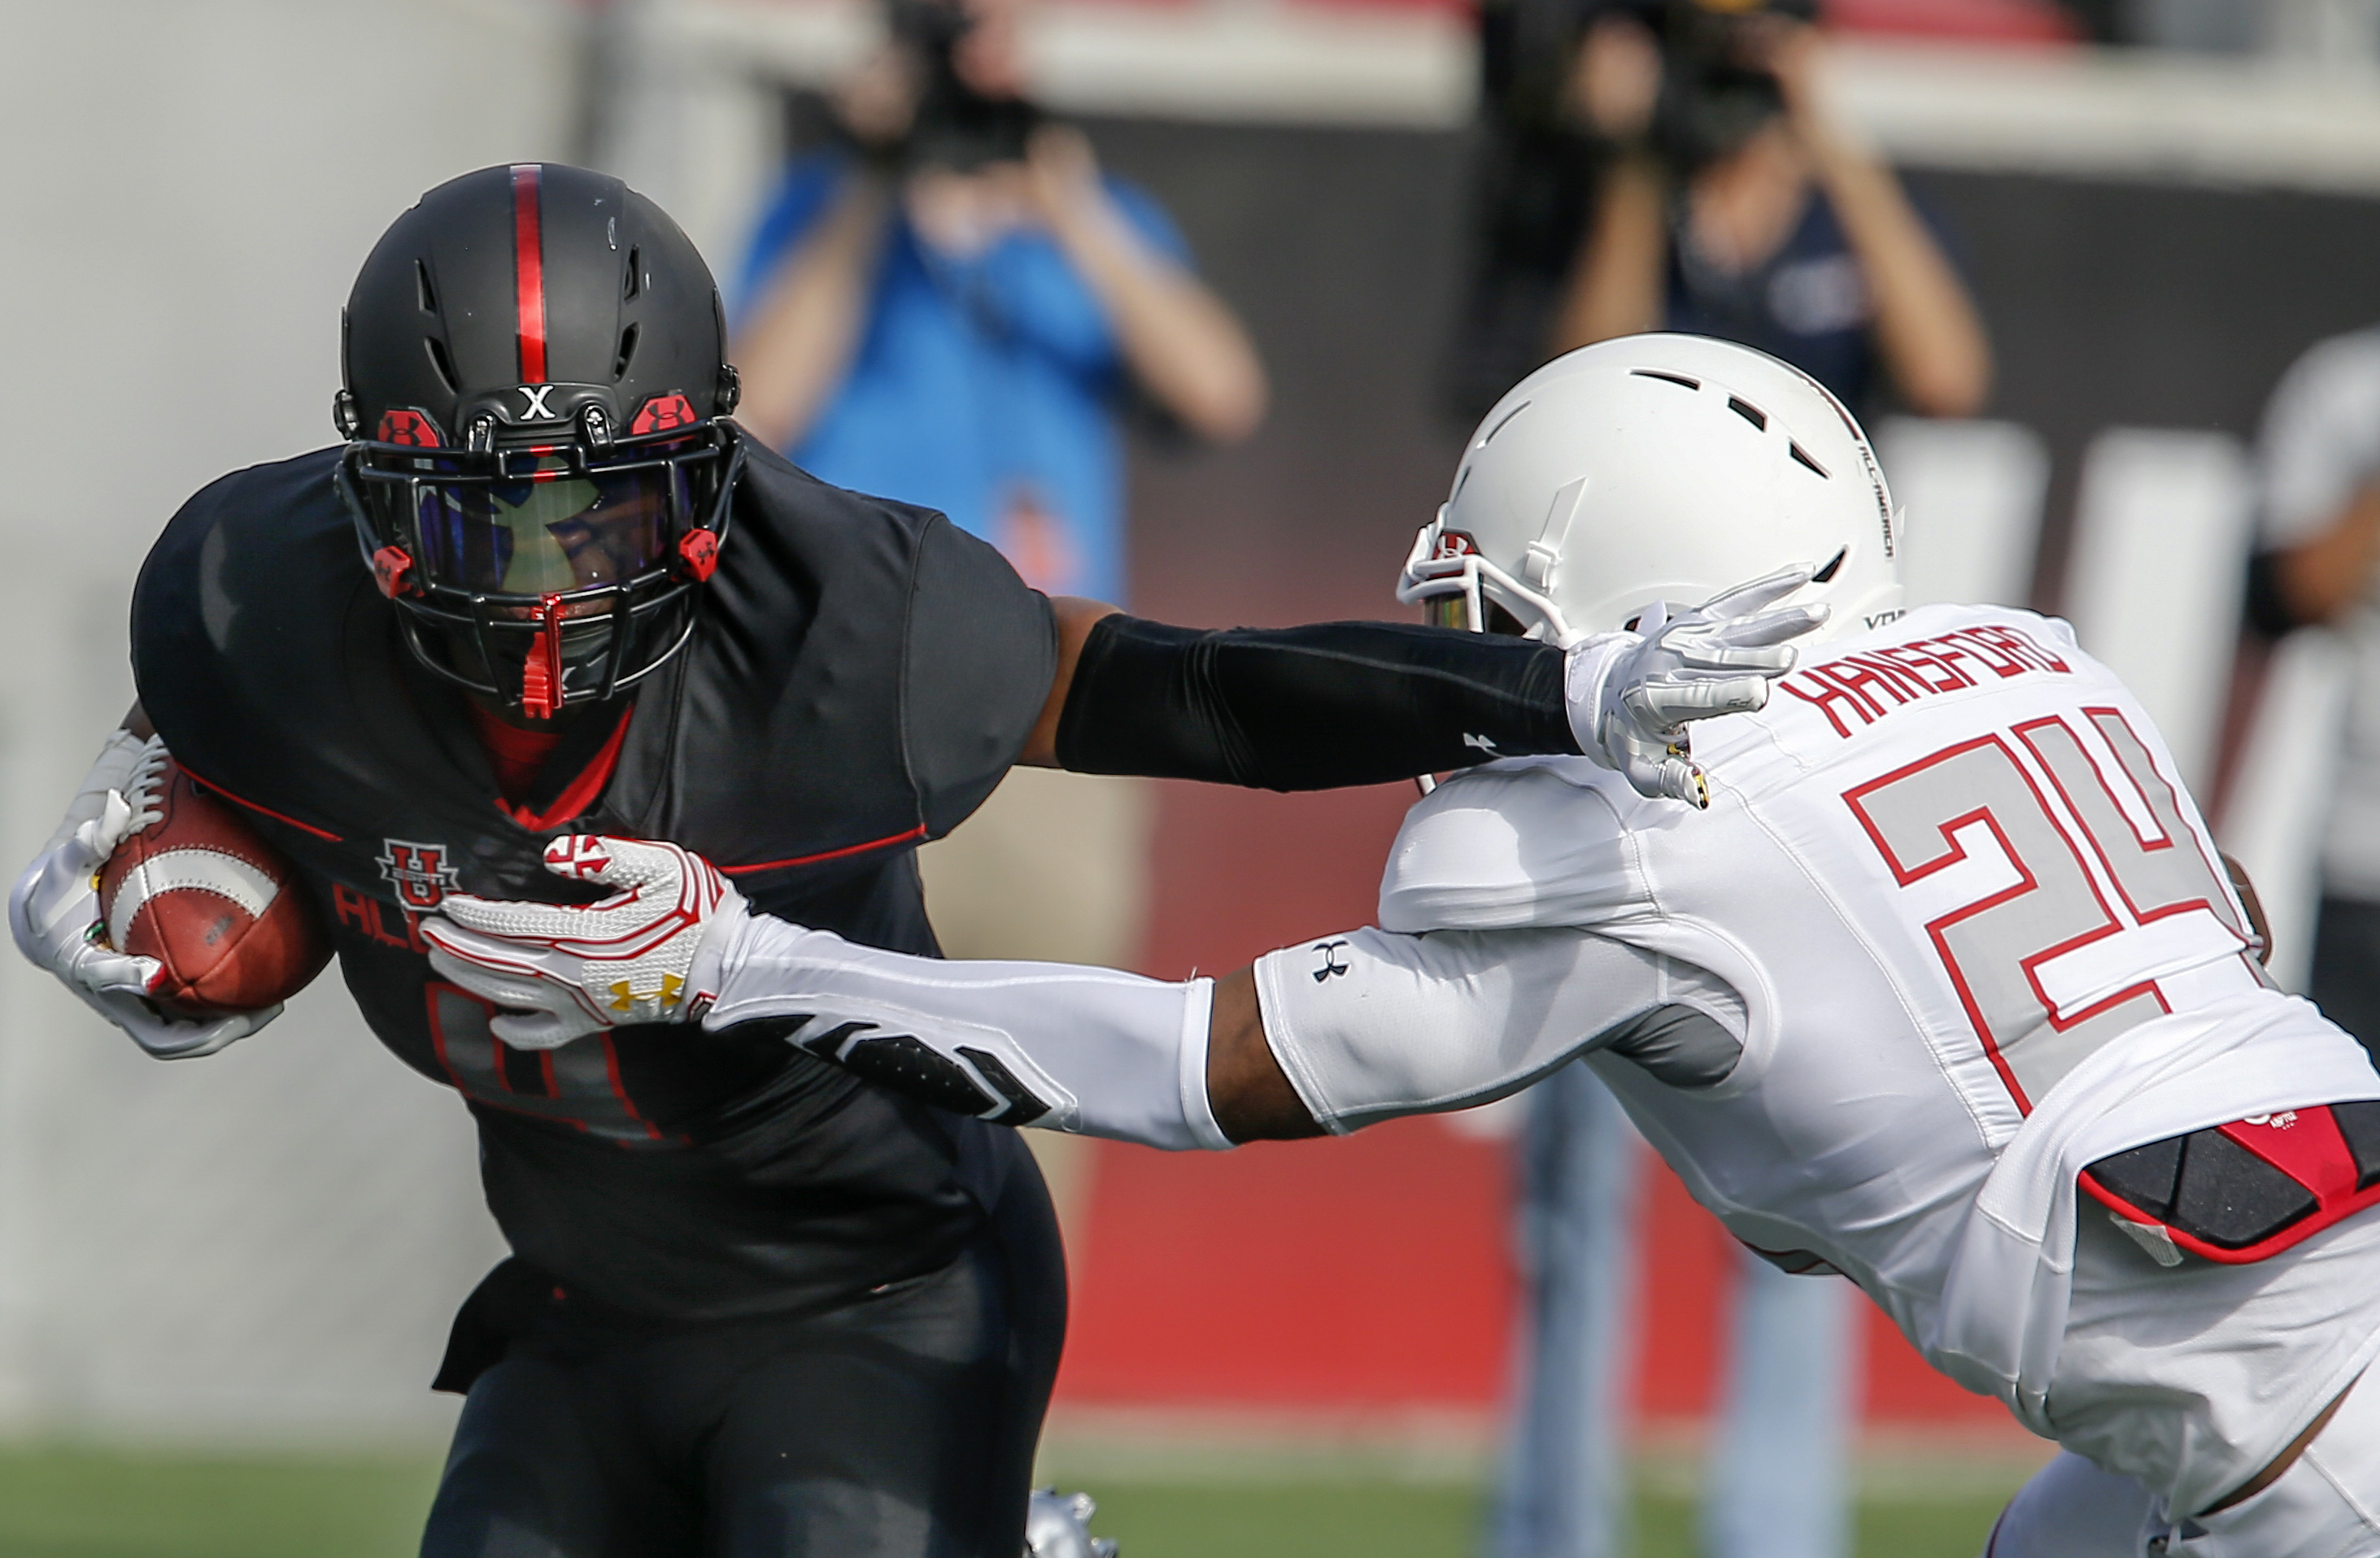 Miles Sanders (4) runs around Aaron Hansford during the Under Armour All-America Game (Photo: Reinhold Matay, USA TODAY Sports)